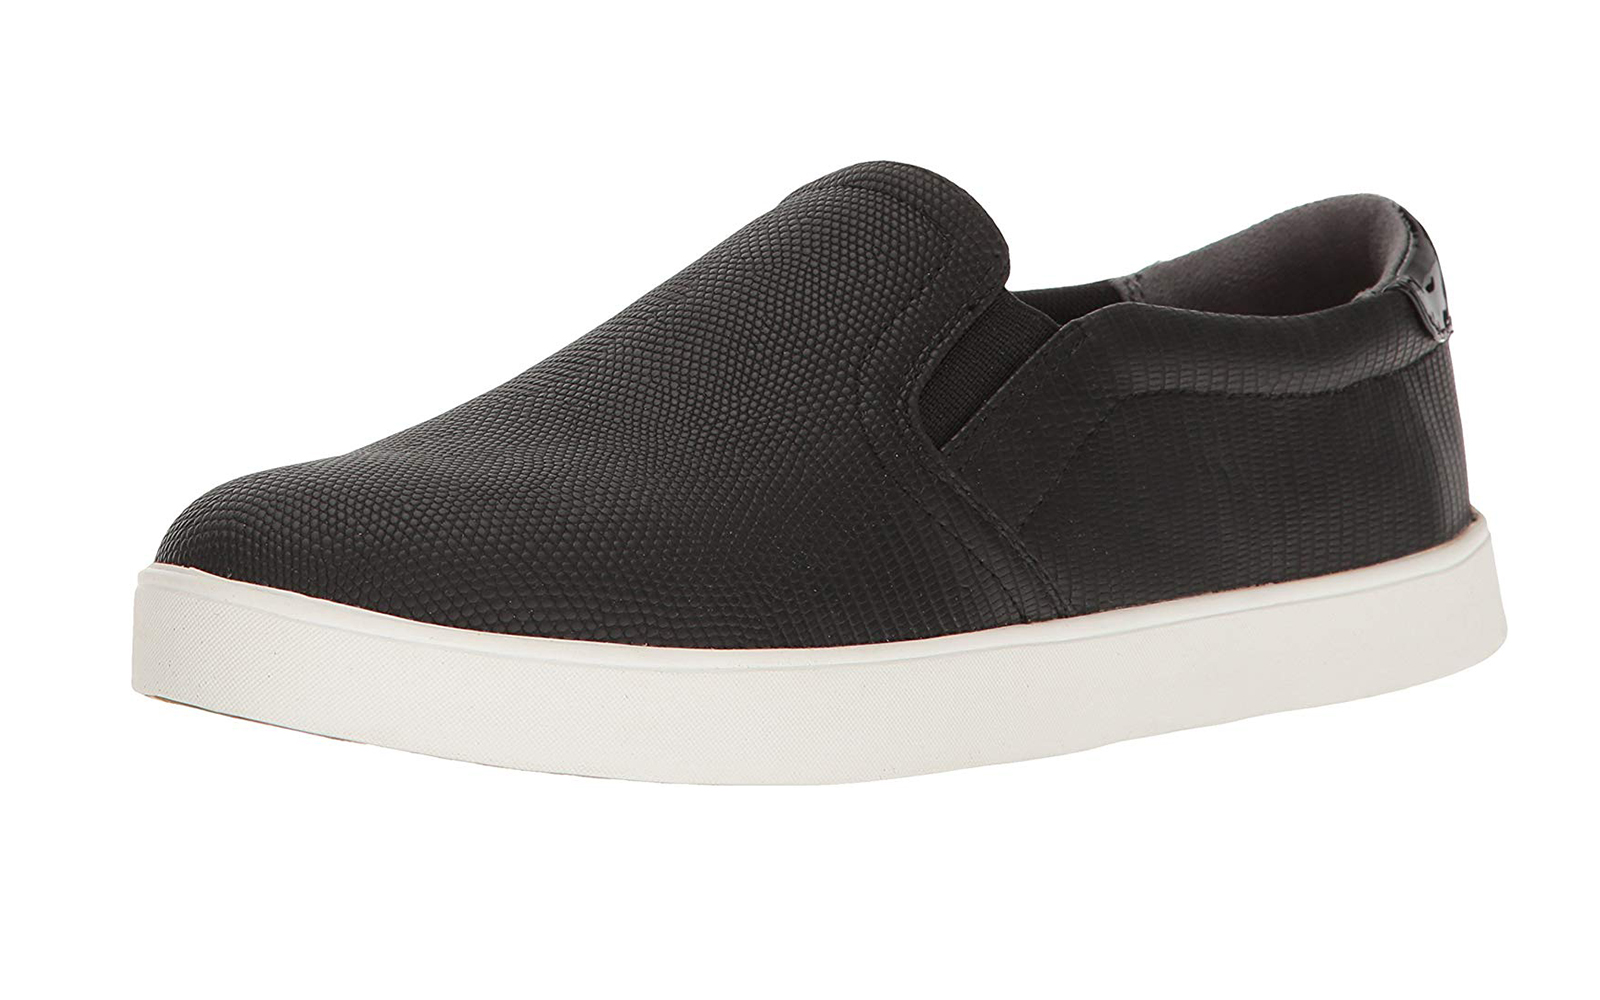 Dr. Scholl's Shoes Madison Fashion Sneaker